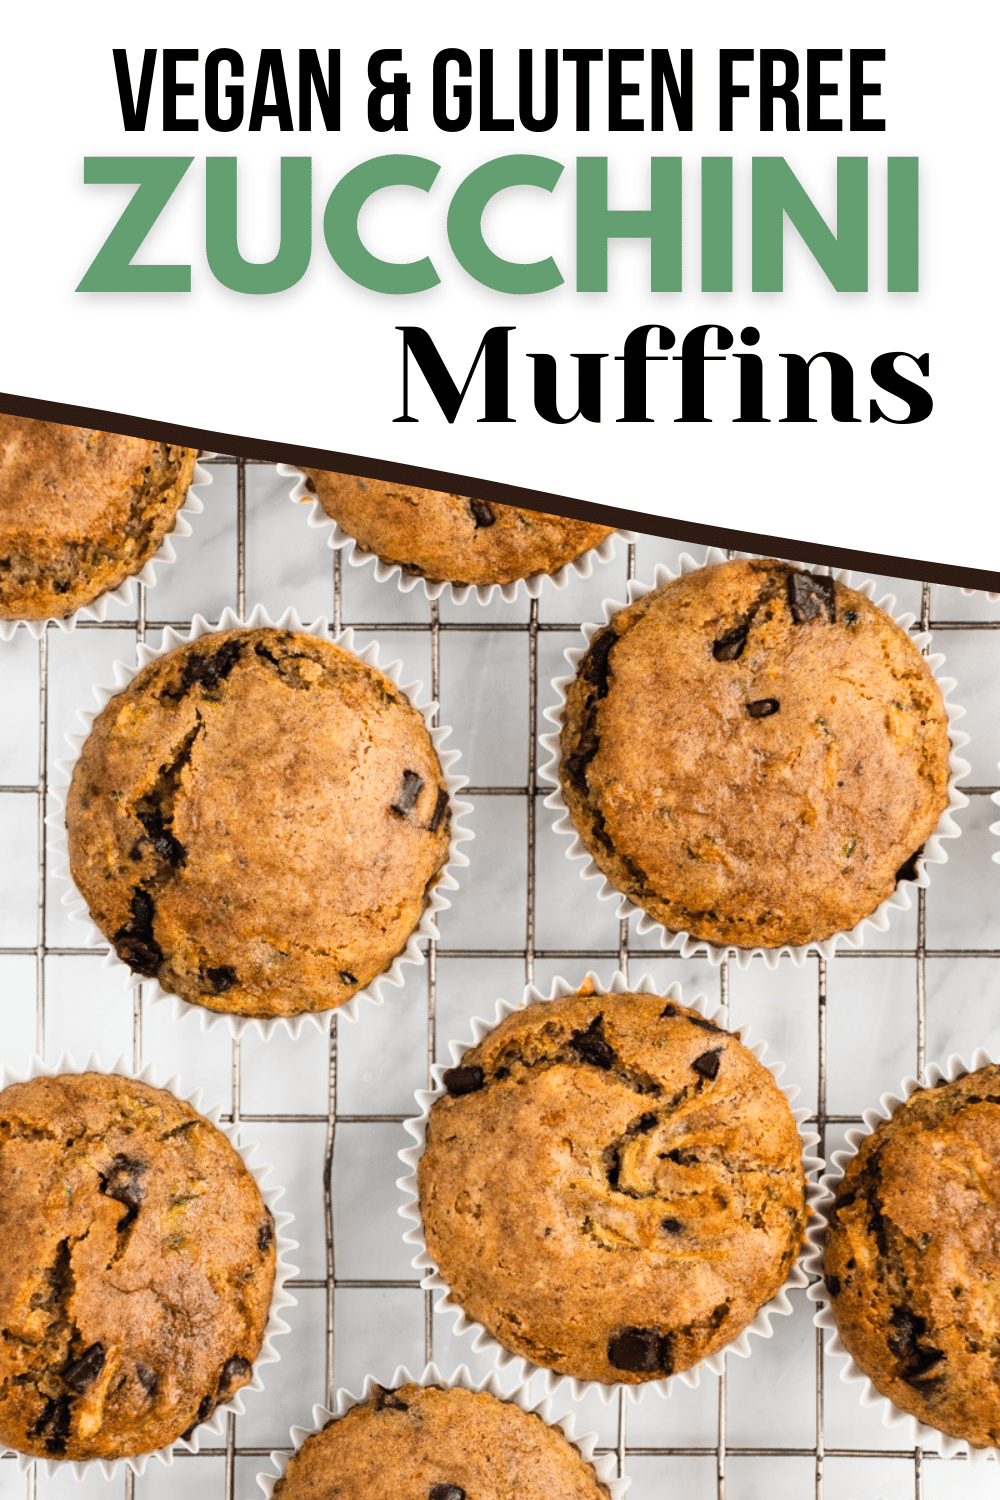 Vegan Zucchini Muffins are perfectly spiced for an easy breakfast treat! They're gluten free, packed with protein, and slightly sweet with bursts of dark chocolate.